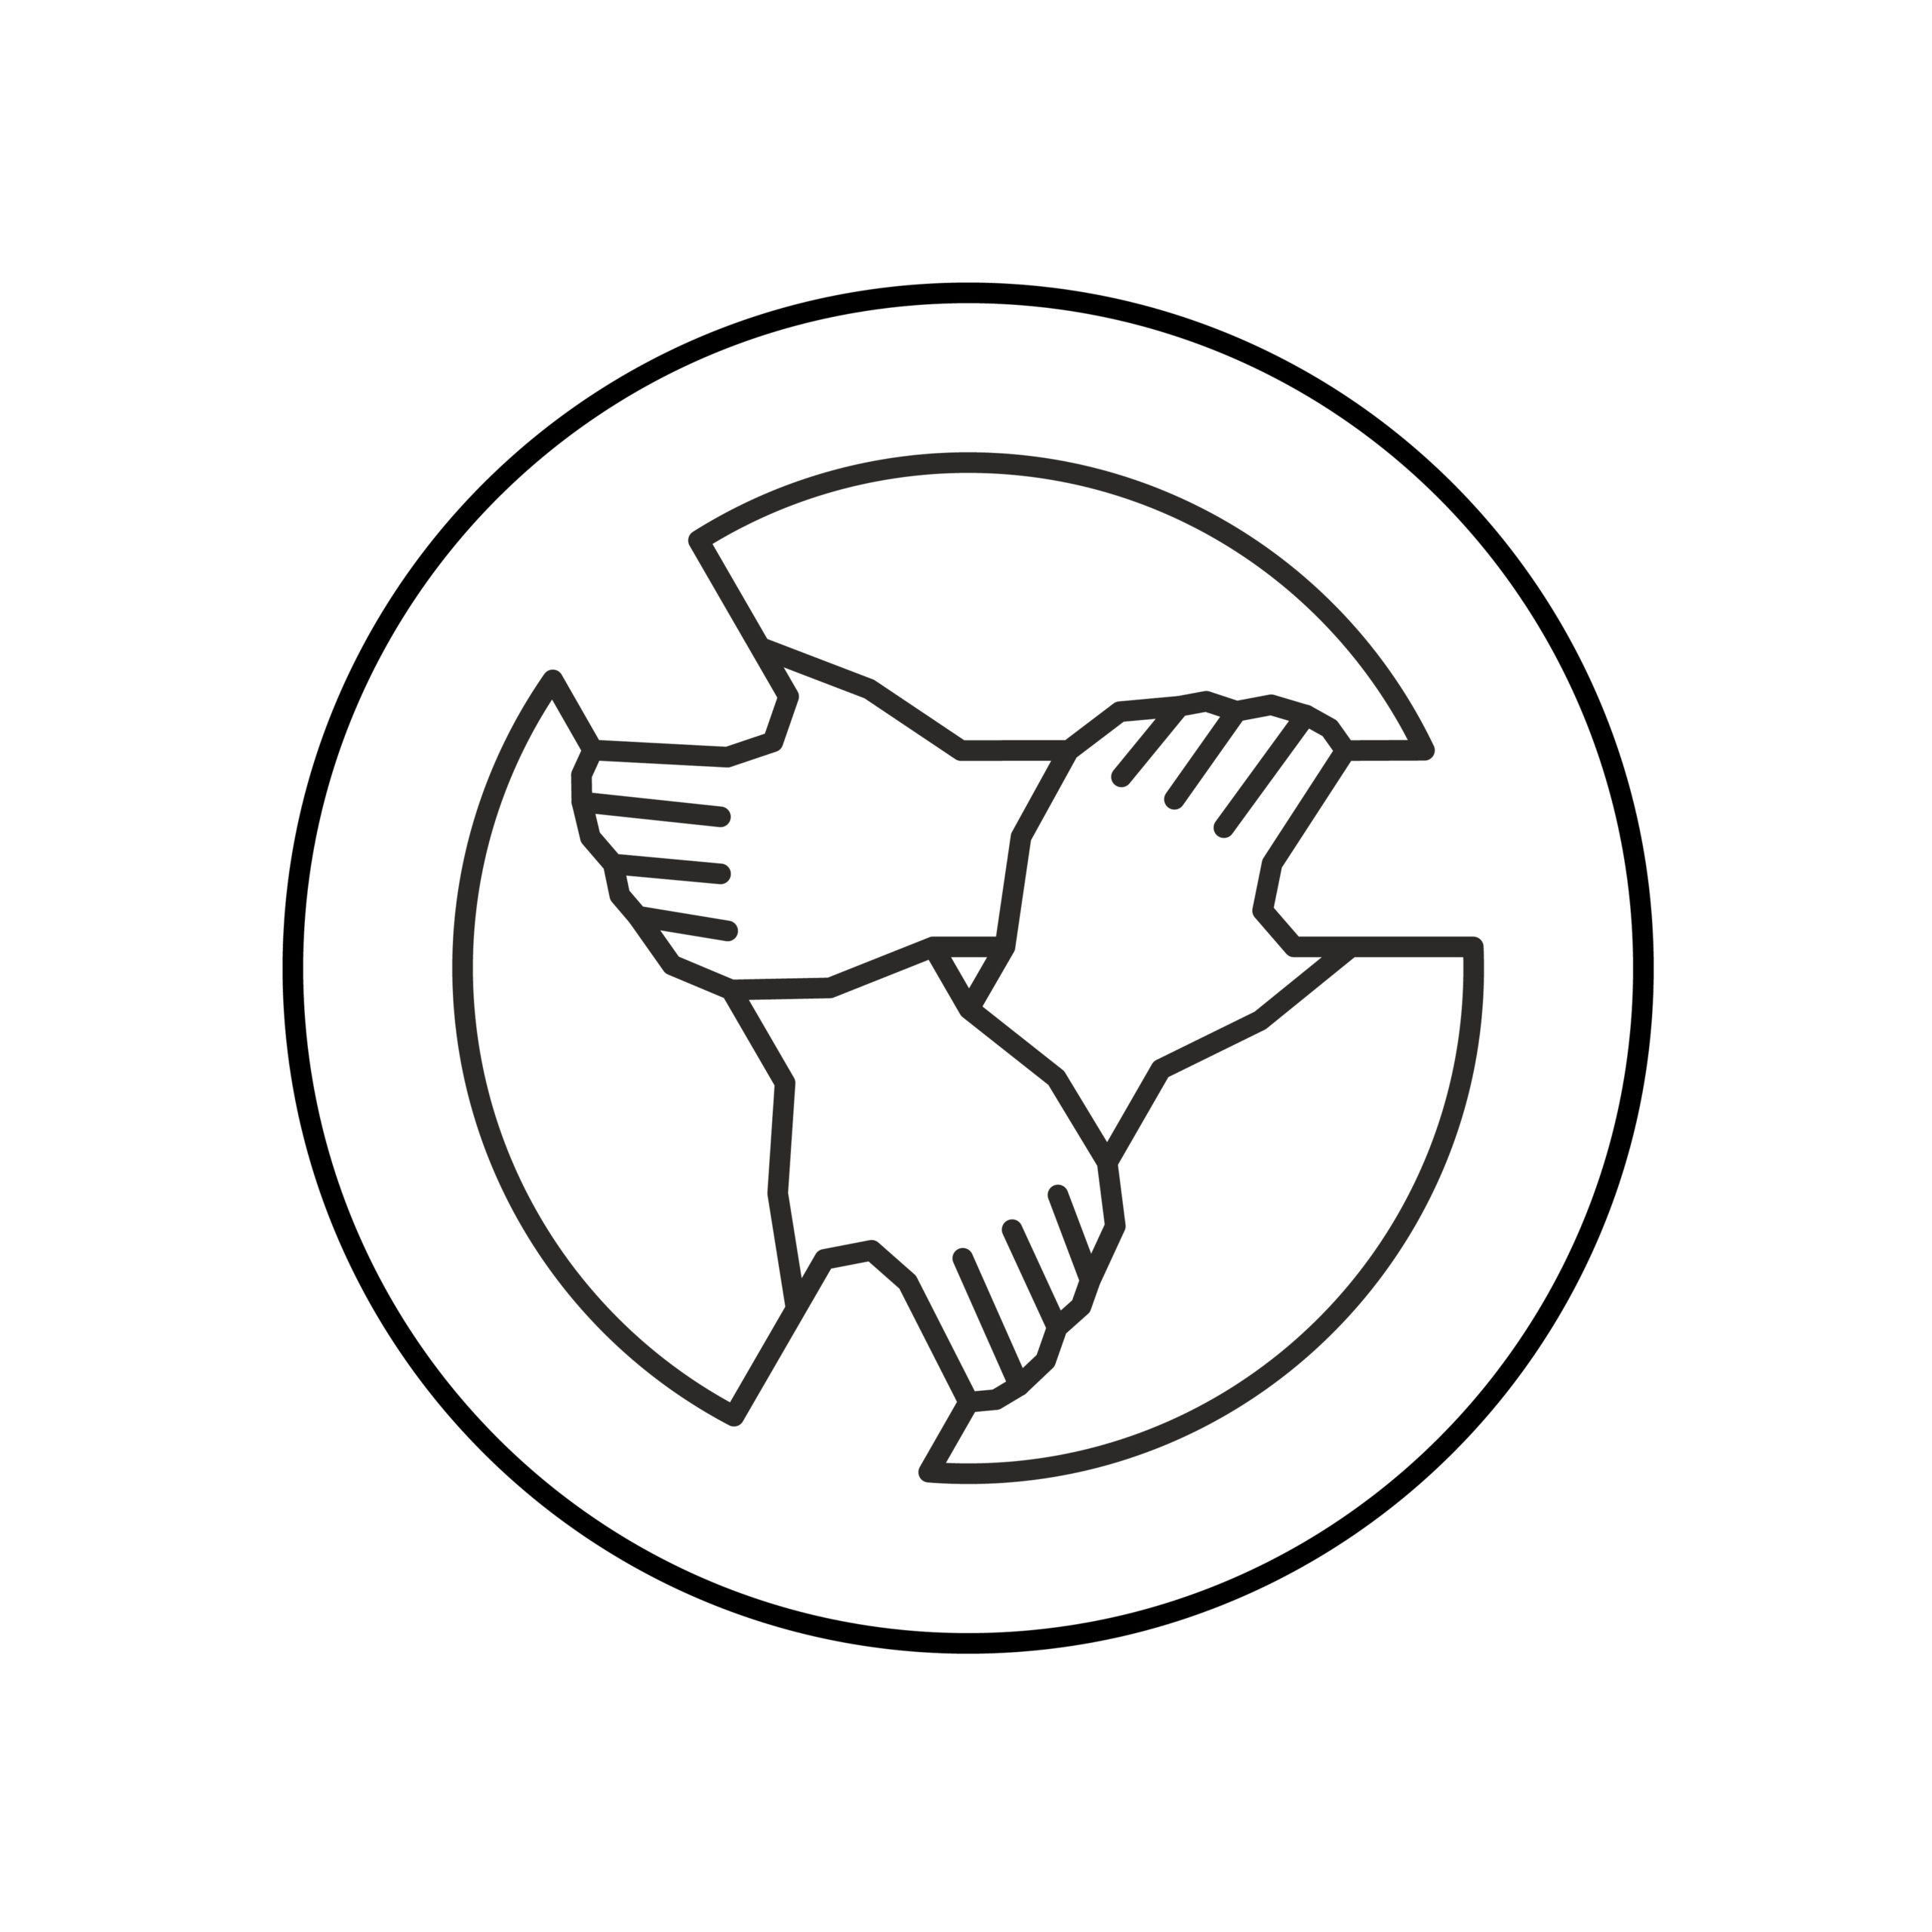 Three hands together support each other outline style logo. Teamwork, union or cooperation concept sign. 3 people hands holding one by one in a circle. Support symbol. Adjustable stroke width.